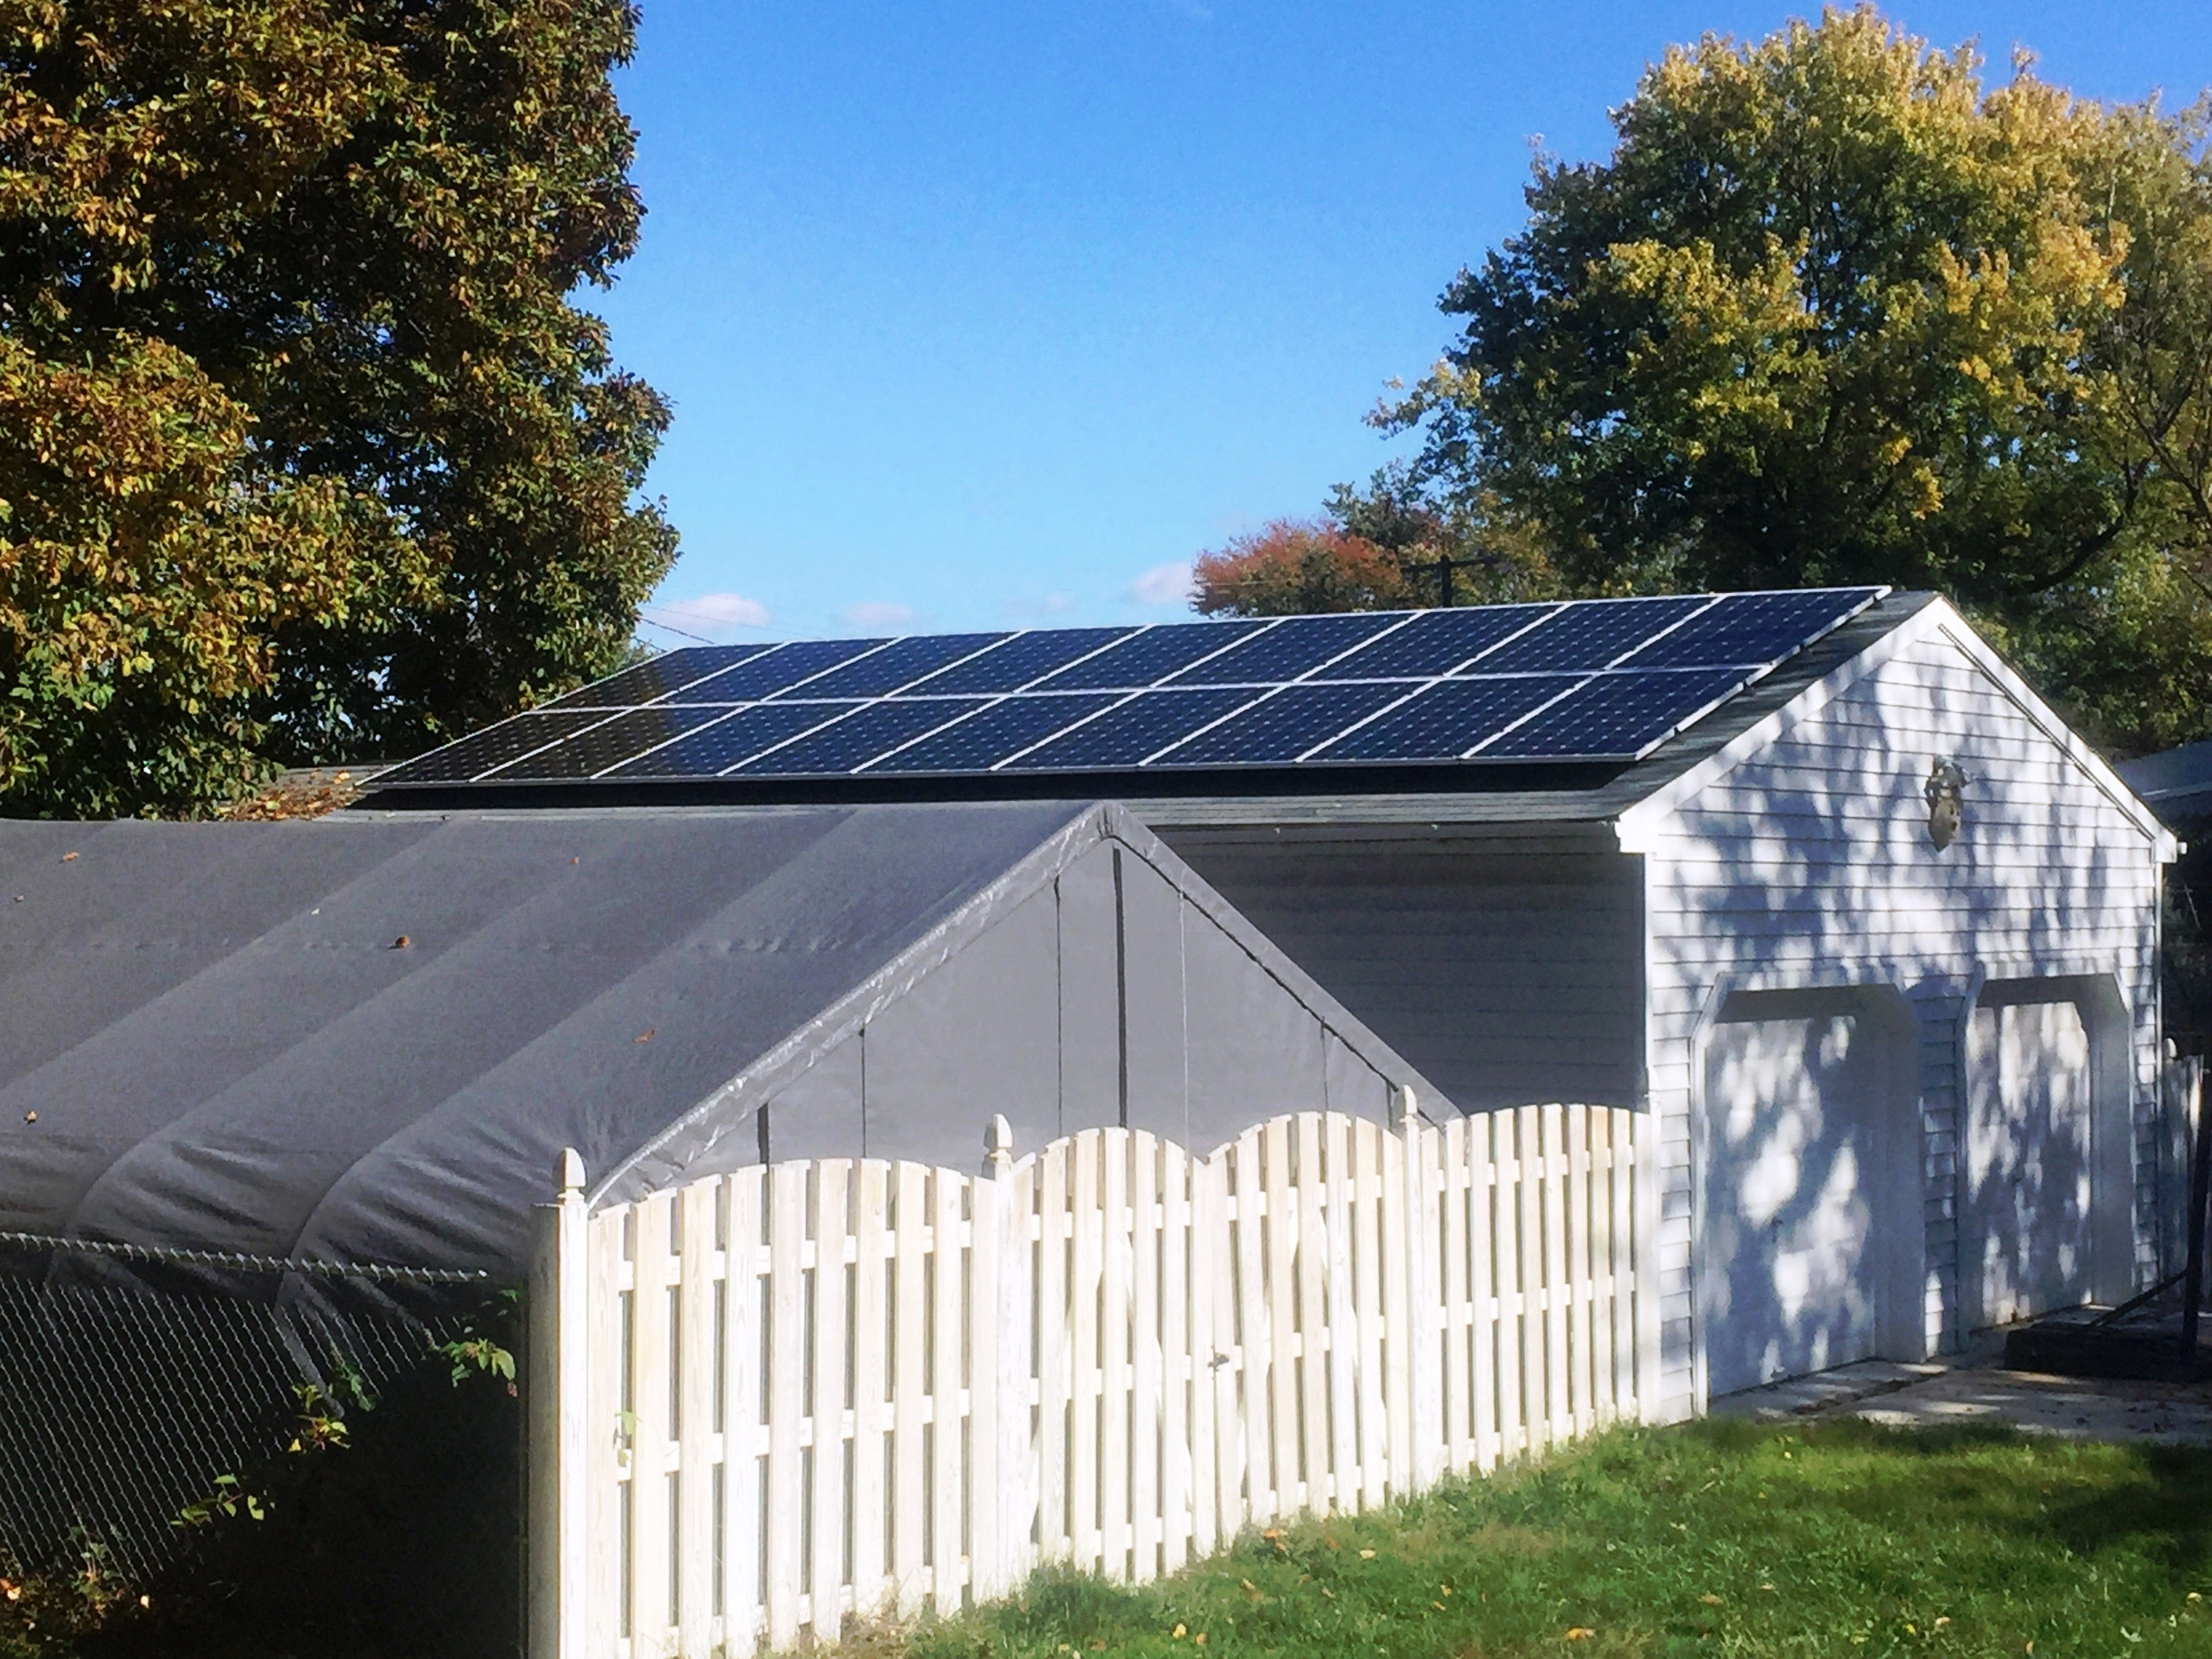 Detached garage array providing 100% of home's power needs for our client!